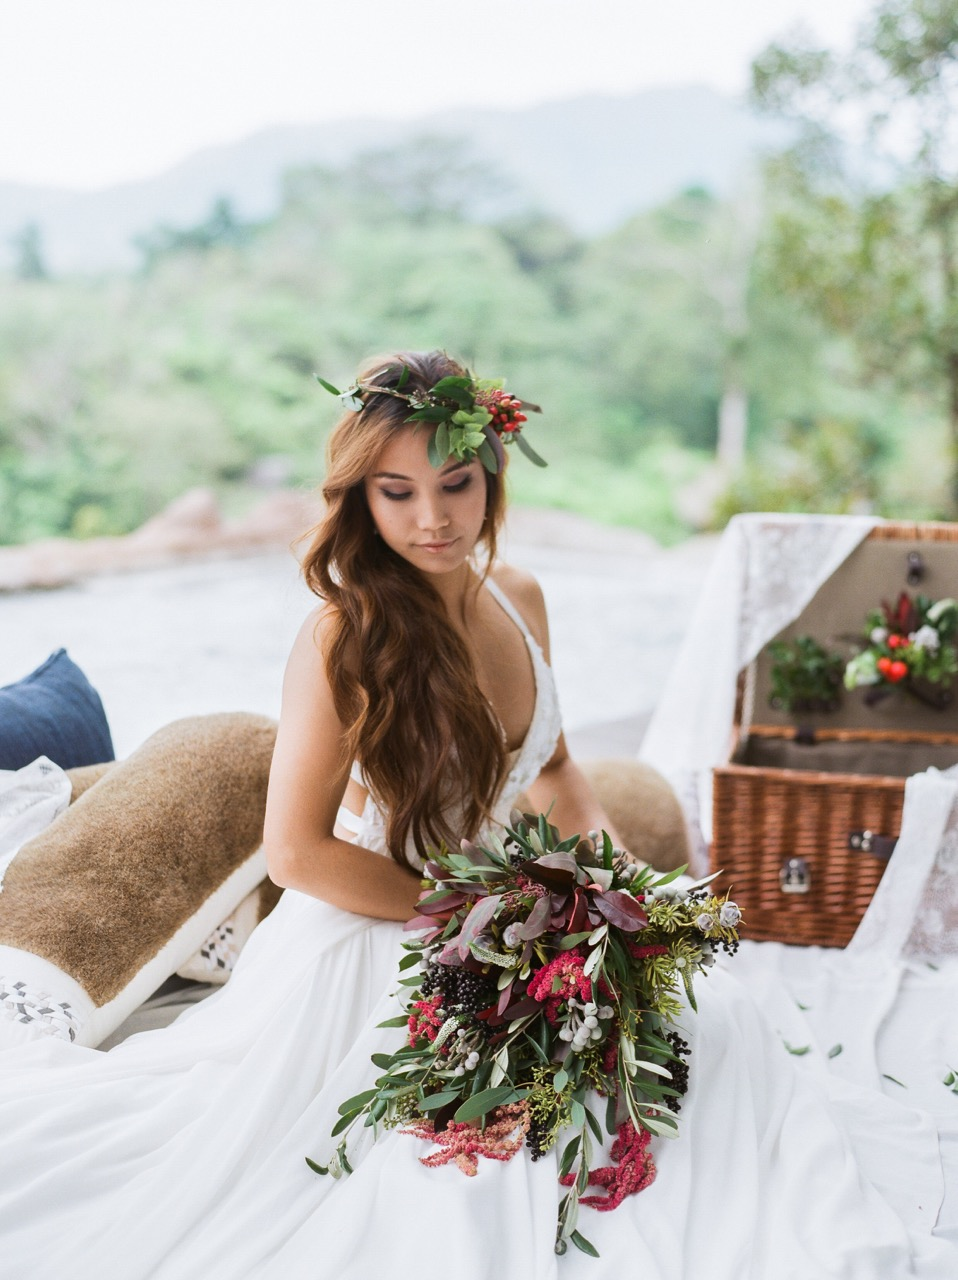 Nymph Inspiration Shoot - The Wedding Bliss Thailand